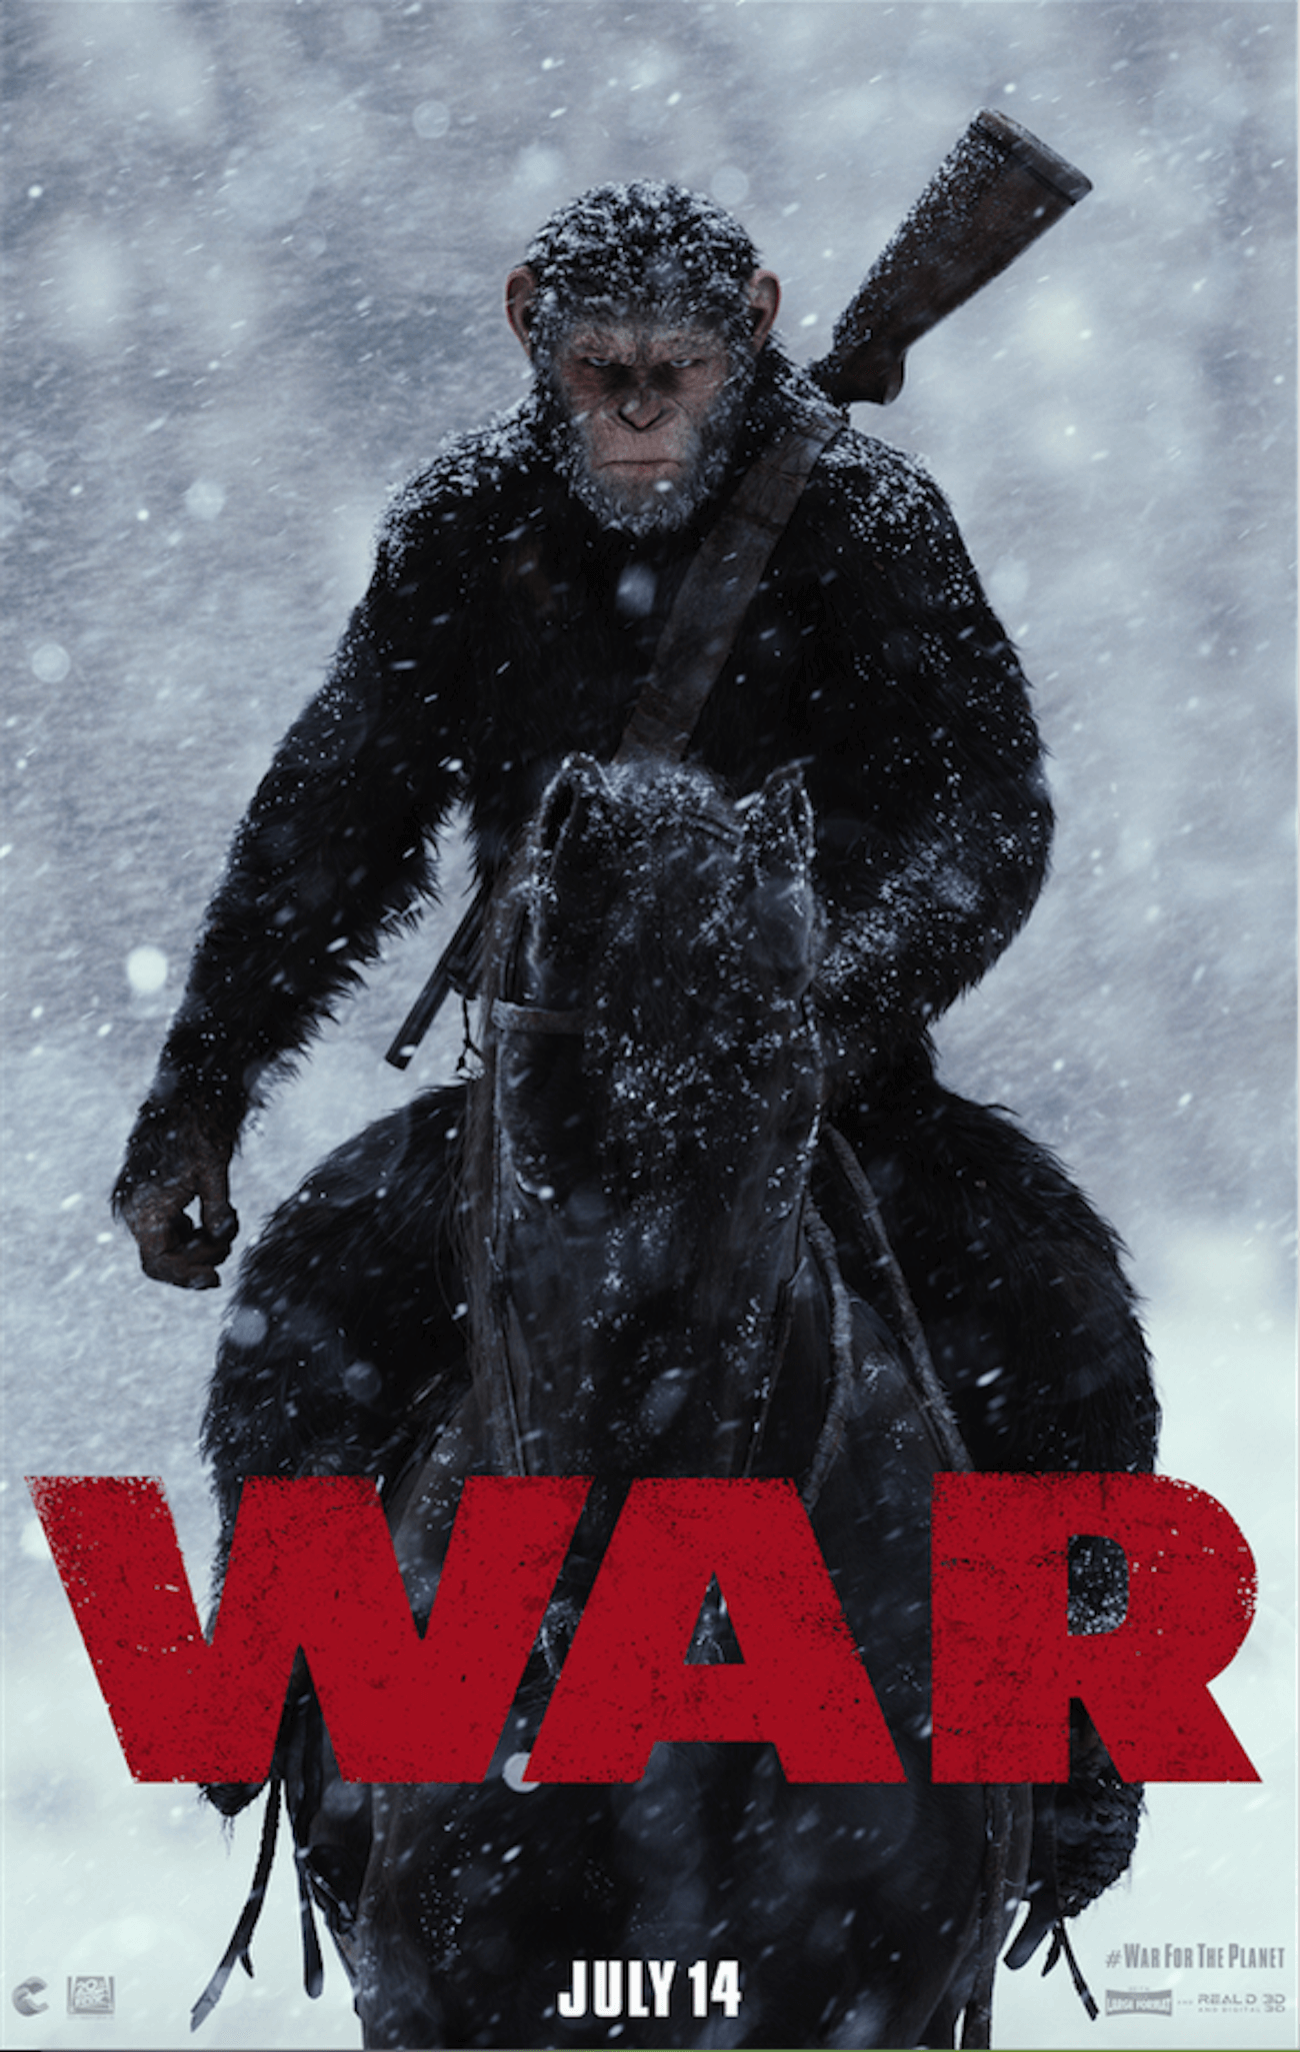 war-of-the-planet-of-the-apes-poster.png